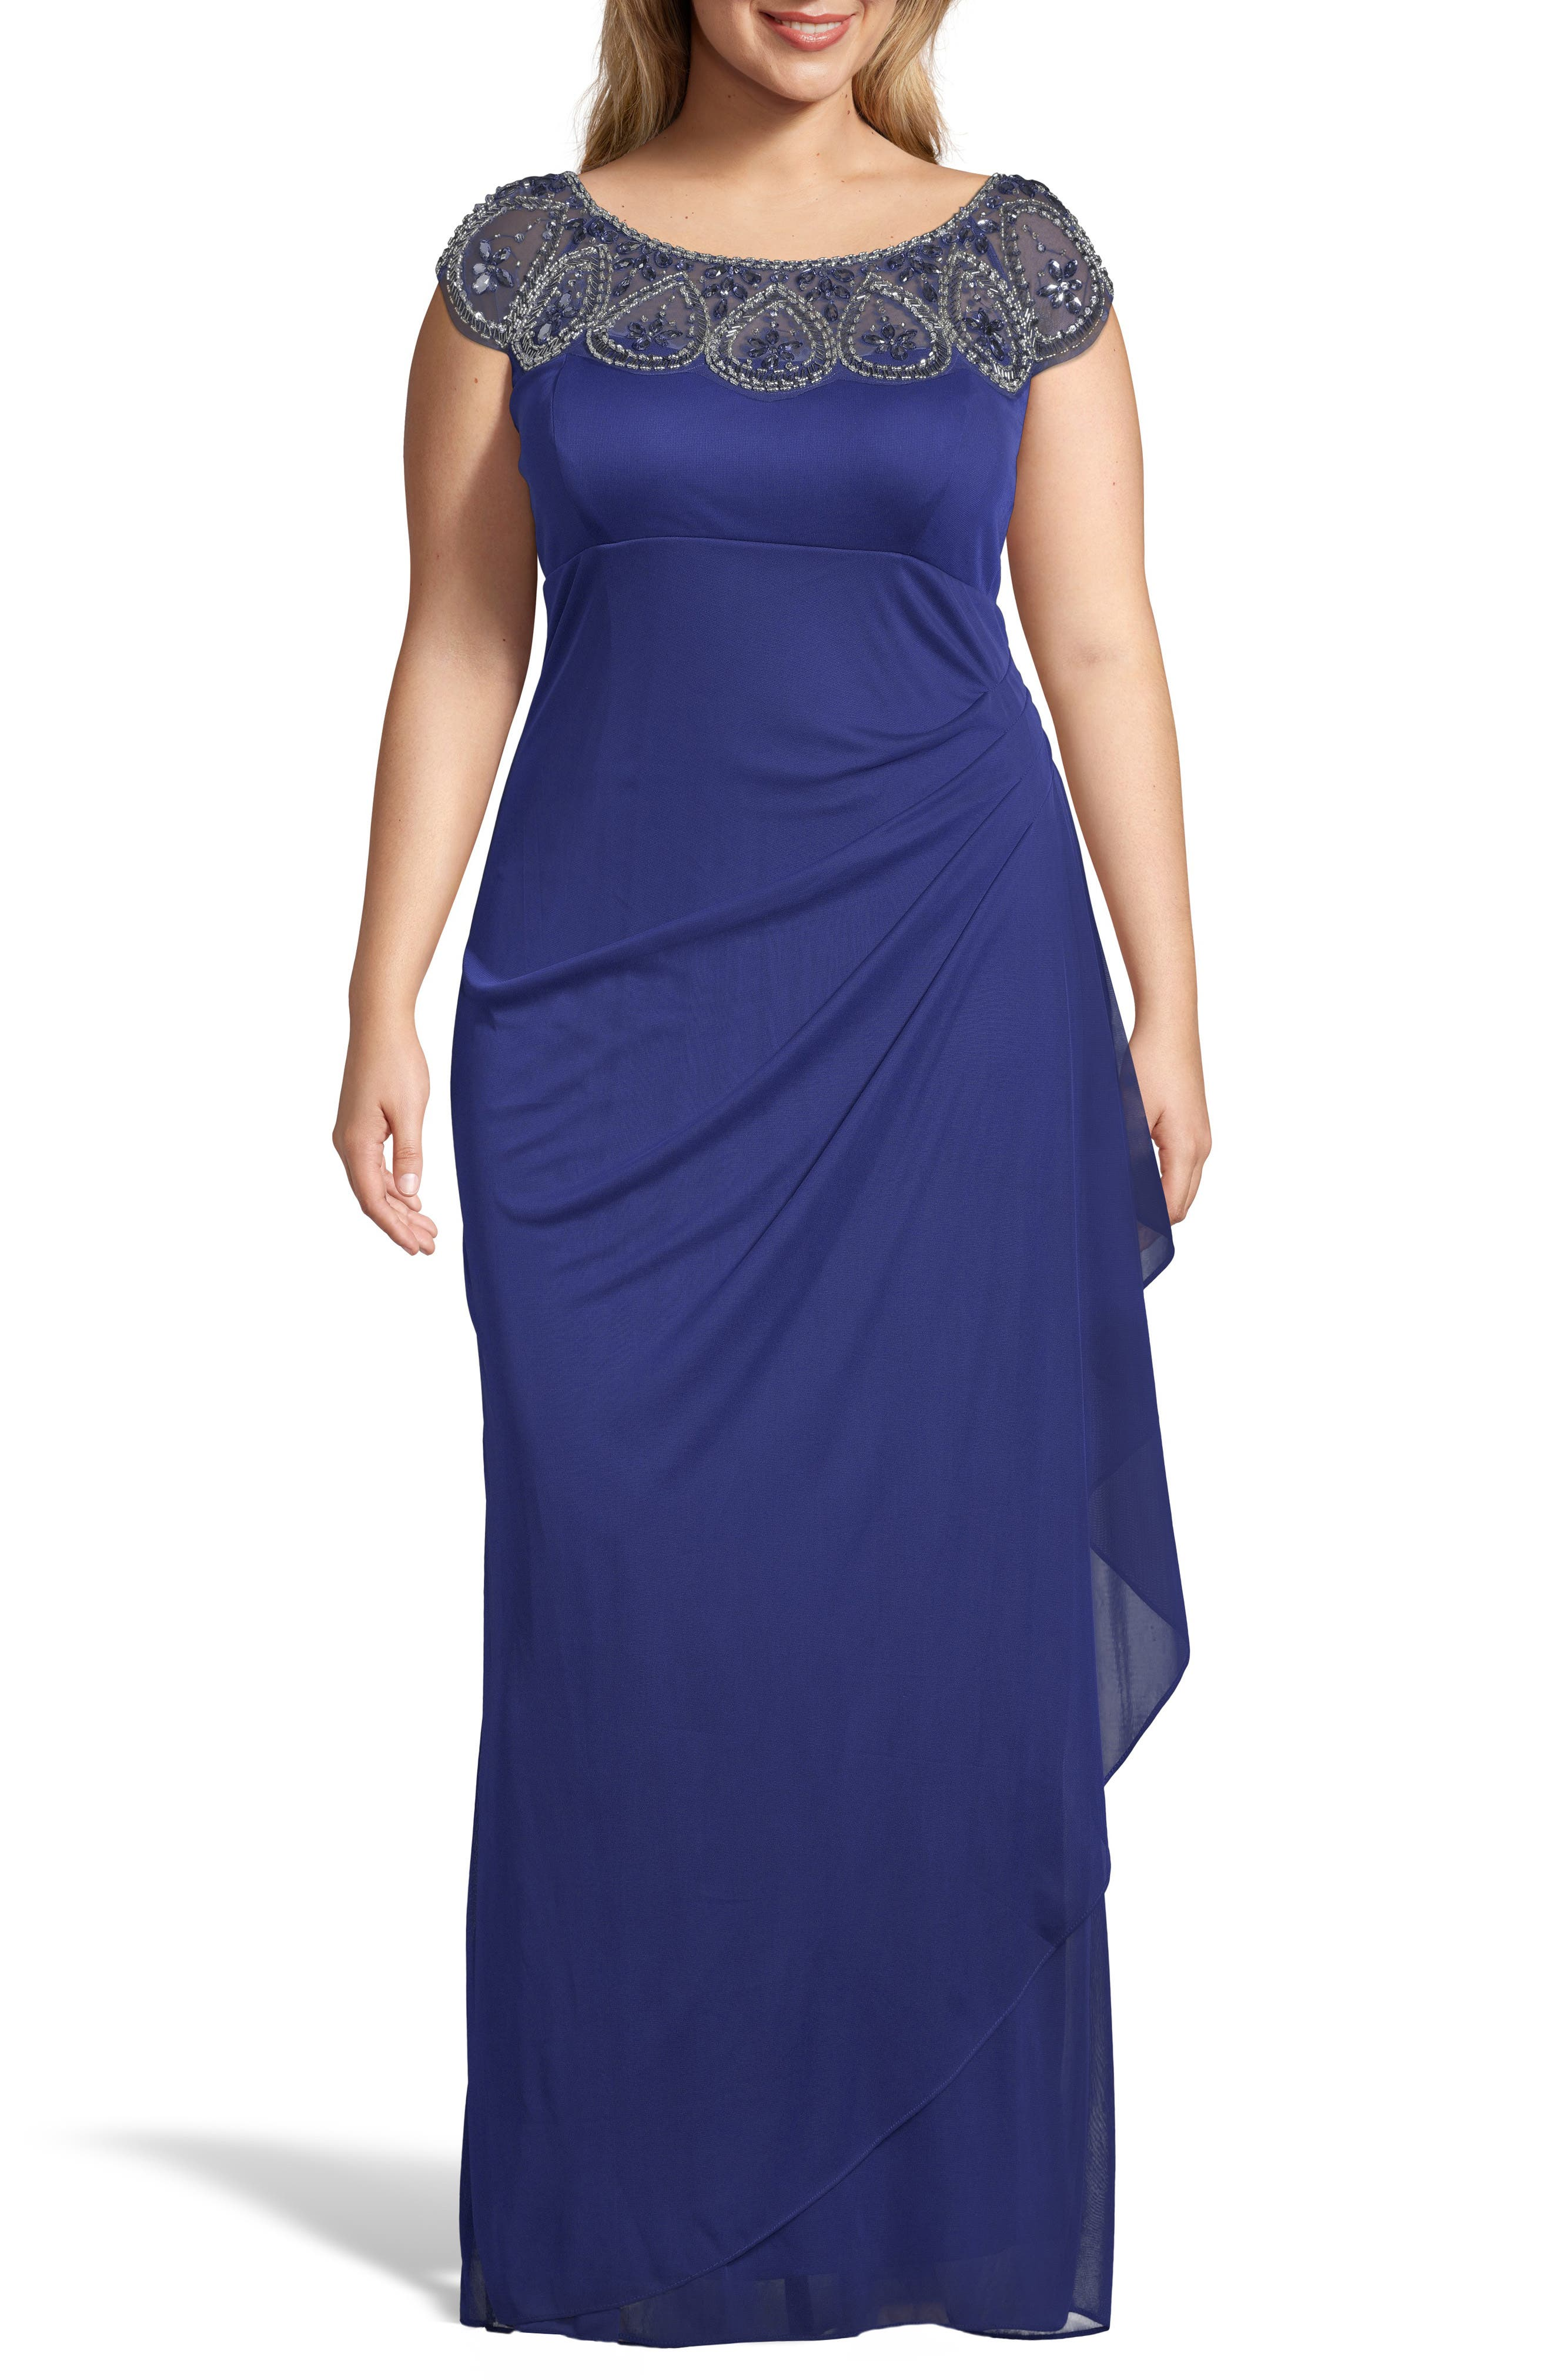 XSCAPE, Beaded Neck Empire Gown, Main thumbnail 1, color, ROYAL